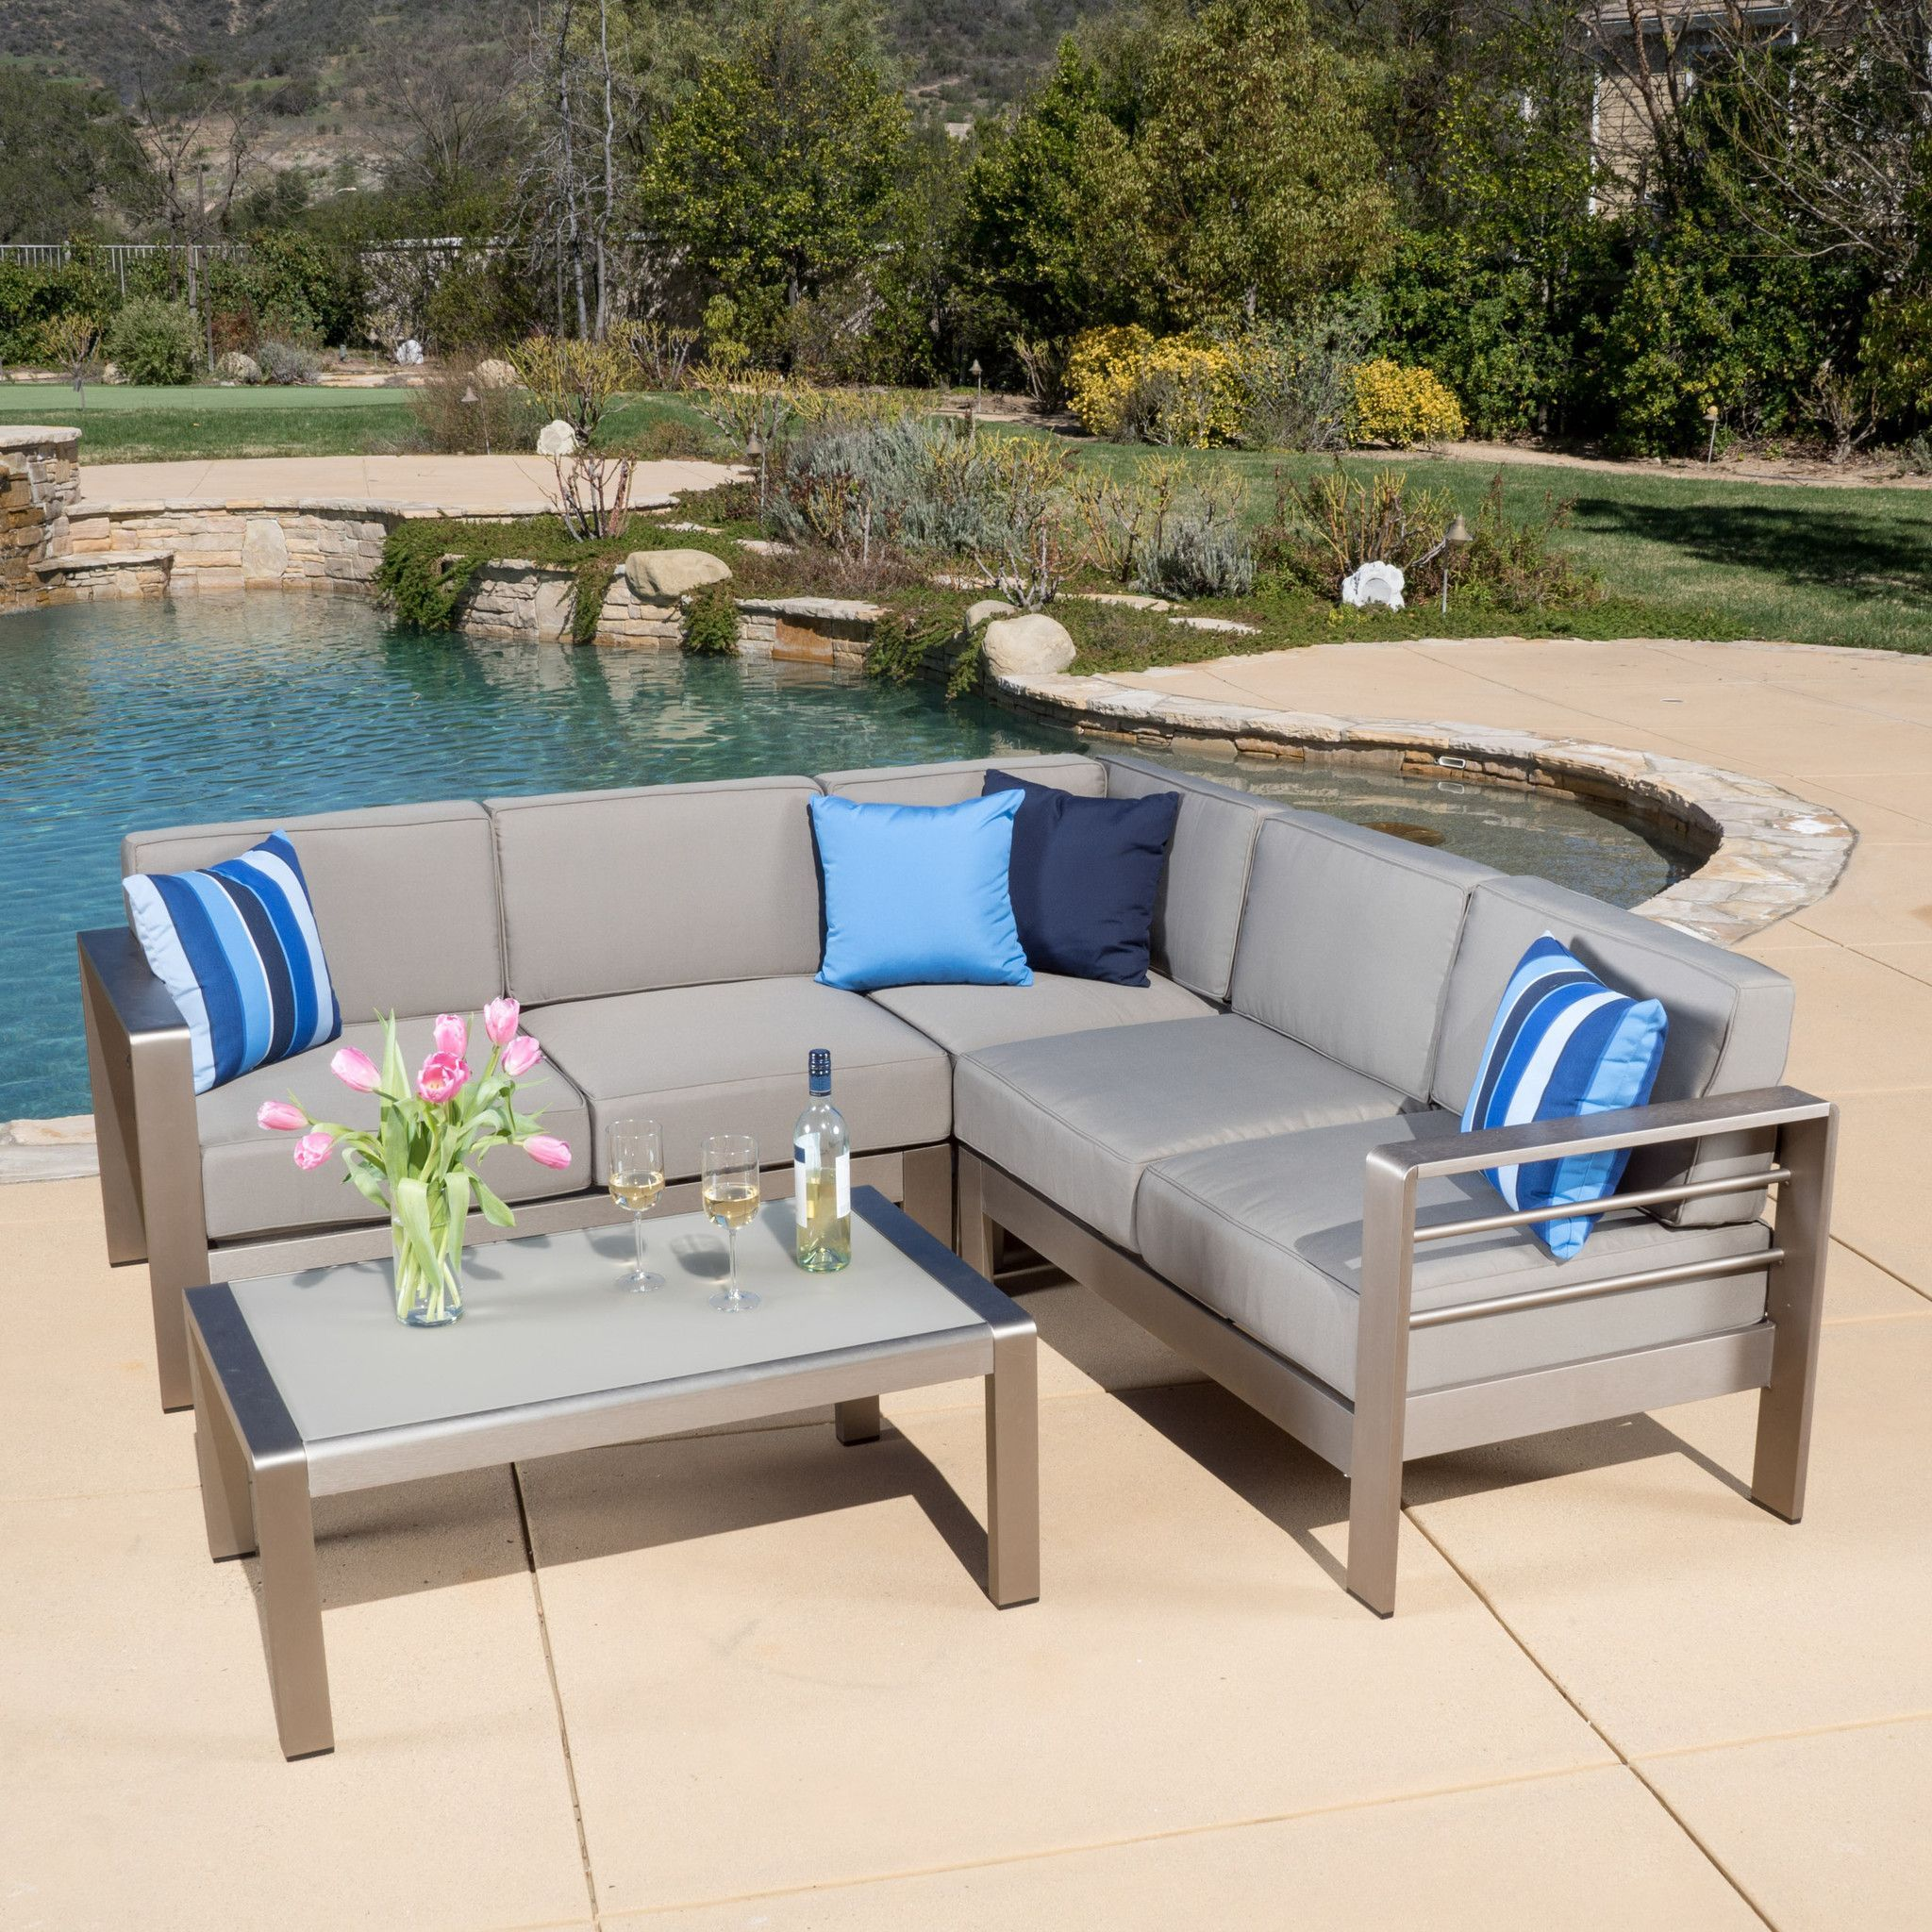 Denise Austin Home Sonora Outdoor Aluminum 4 piece Sofa Set with CushionsDenise Austin Home Sonora Outdoor Aluminum 4 piece Sofa Set with  . Outdoor Dining Sets Austin. Home Design Ideas